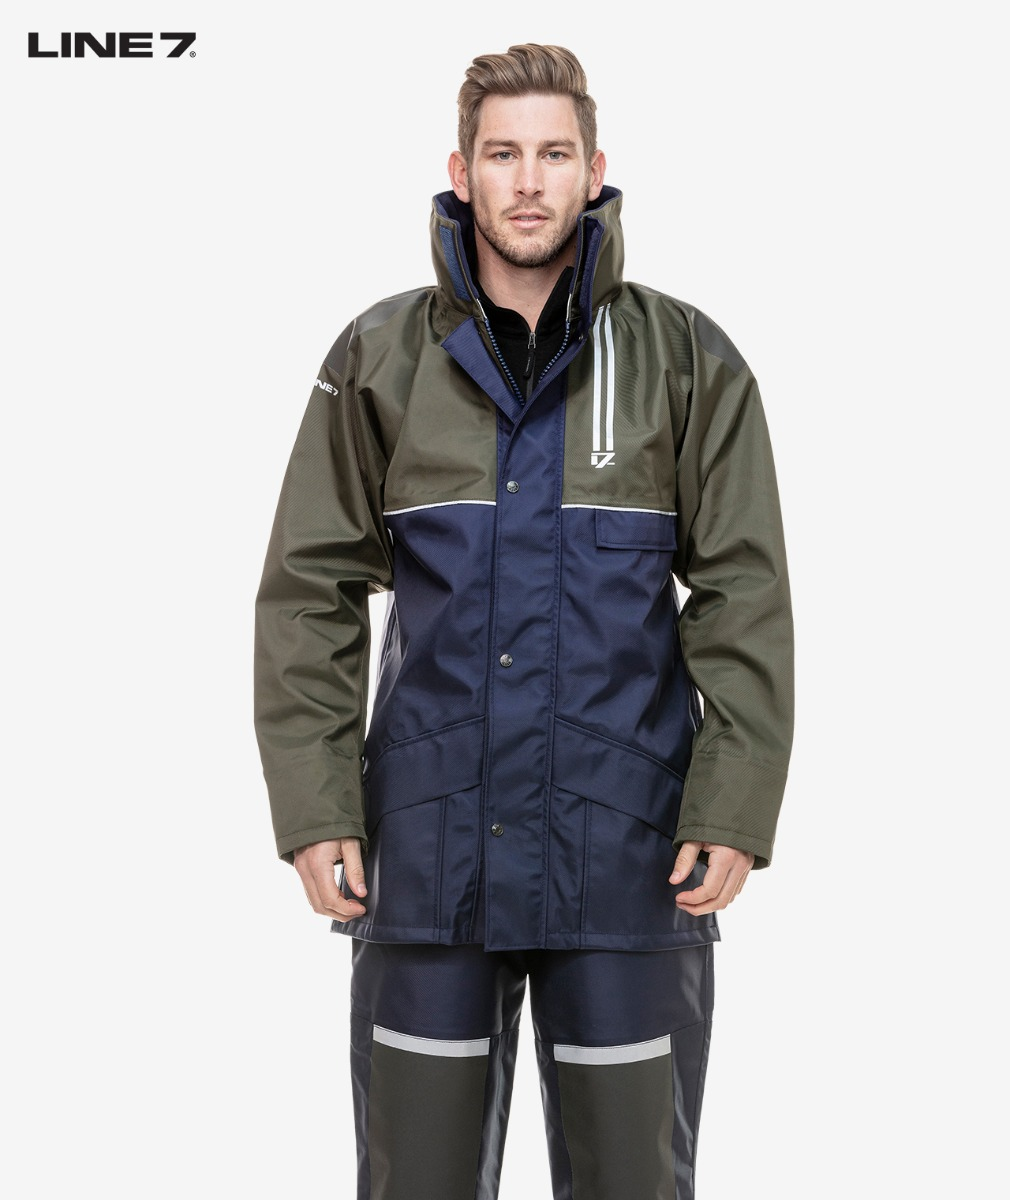 Line 7 Men's Territory Waterproof Jacket